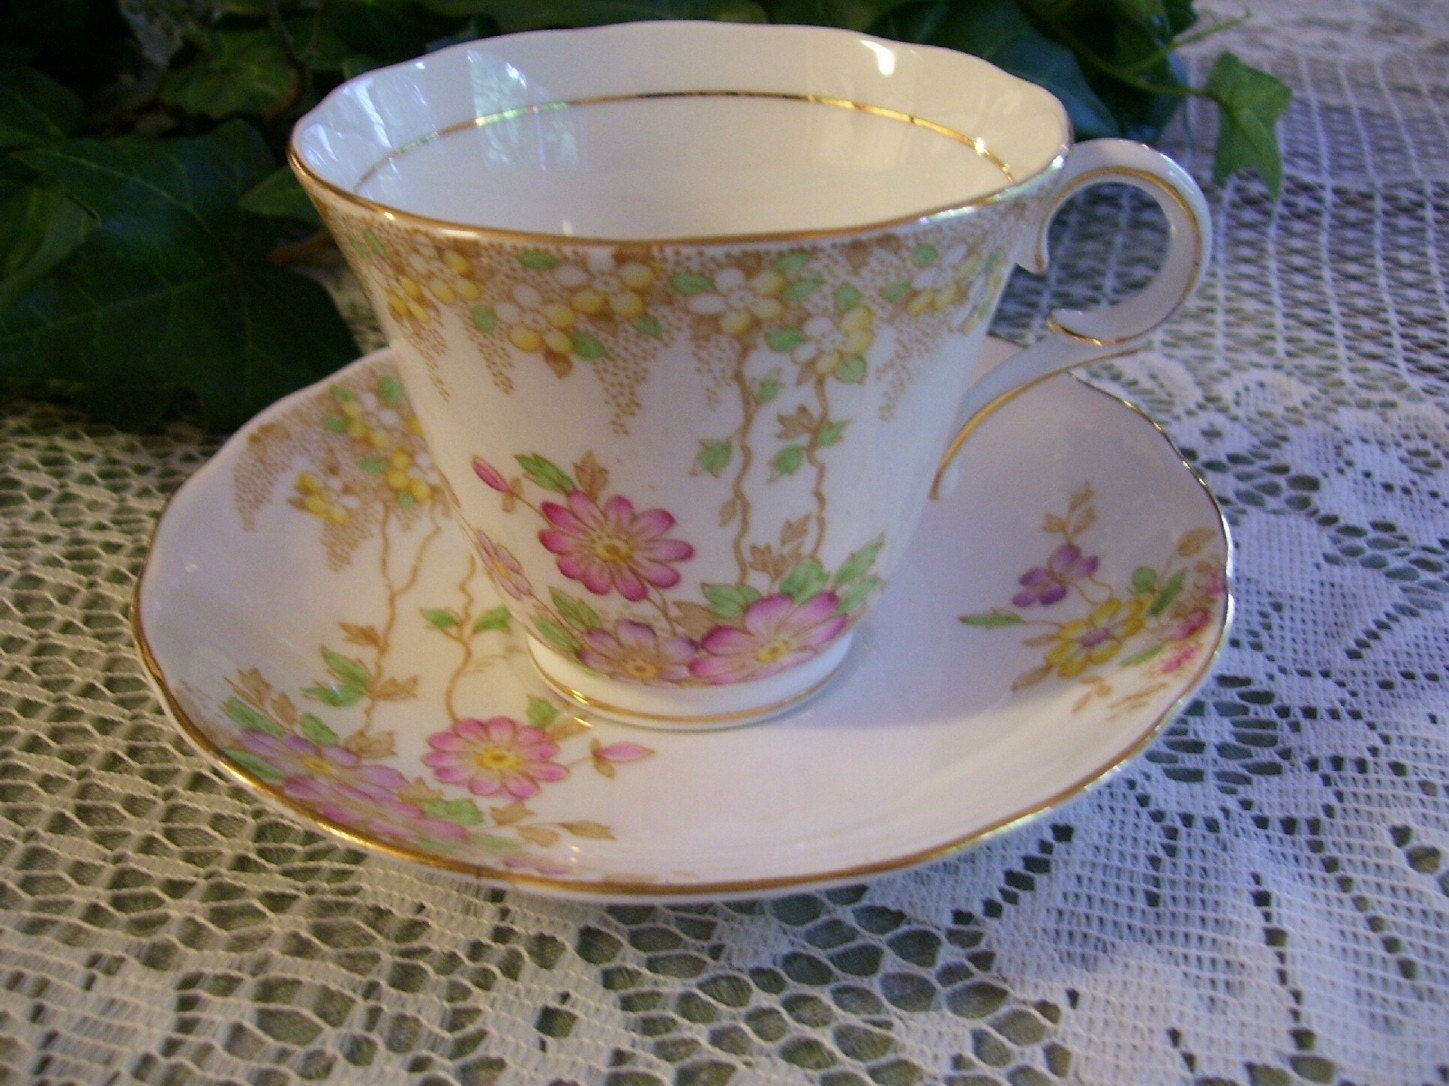 Tuscan Bone China Dinnerware - Parcels of Time Collectible